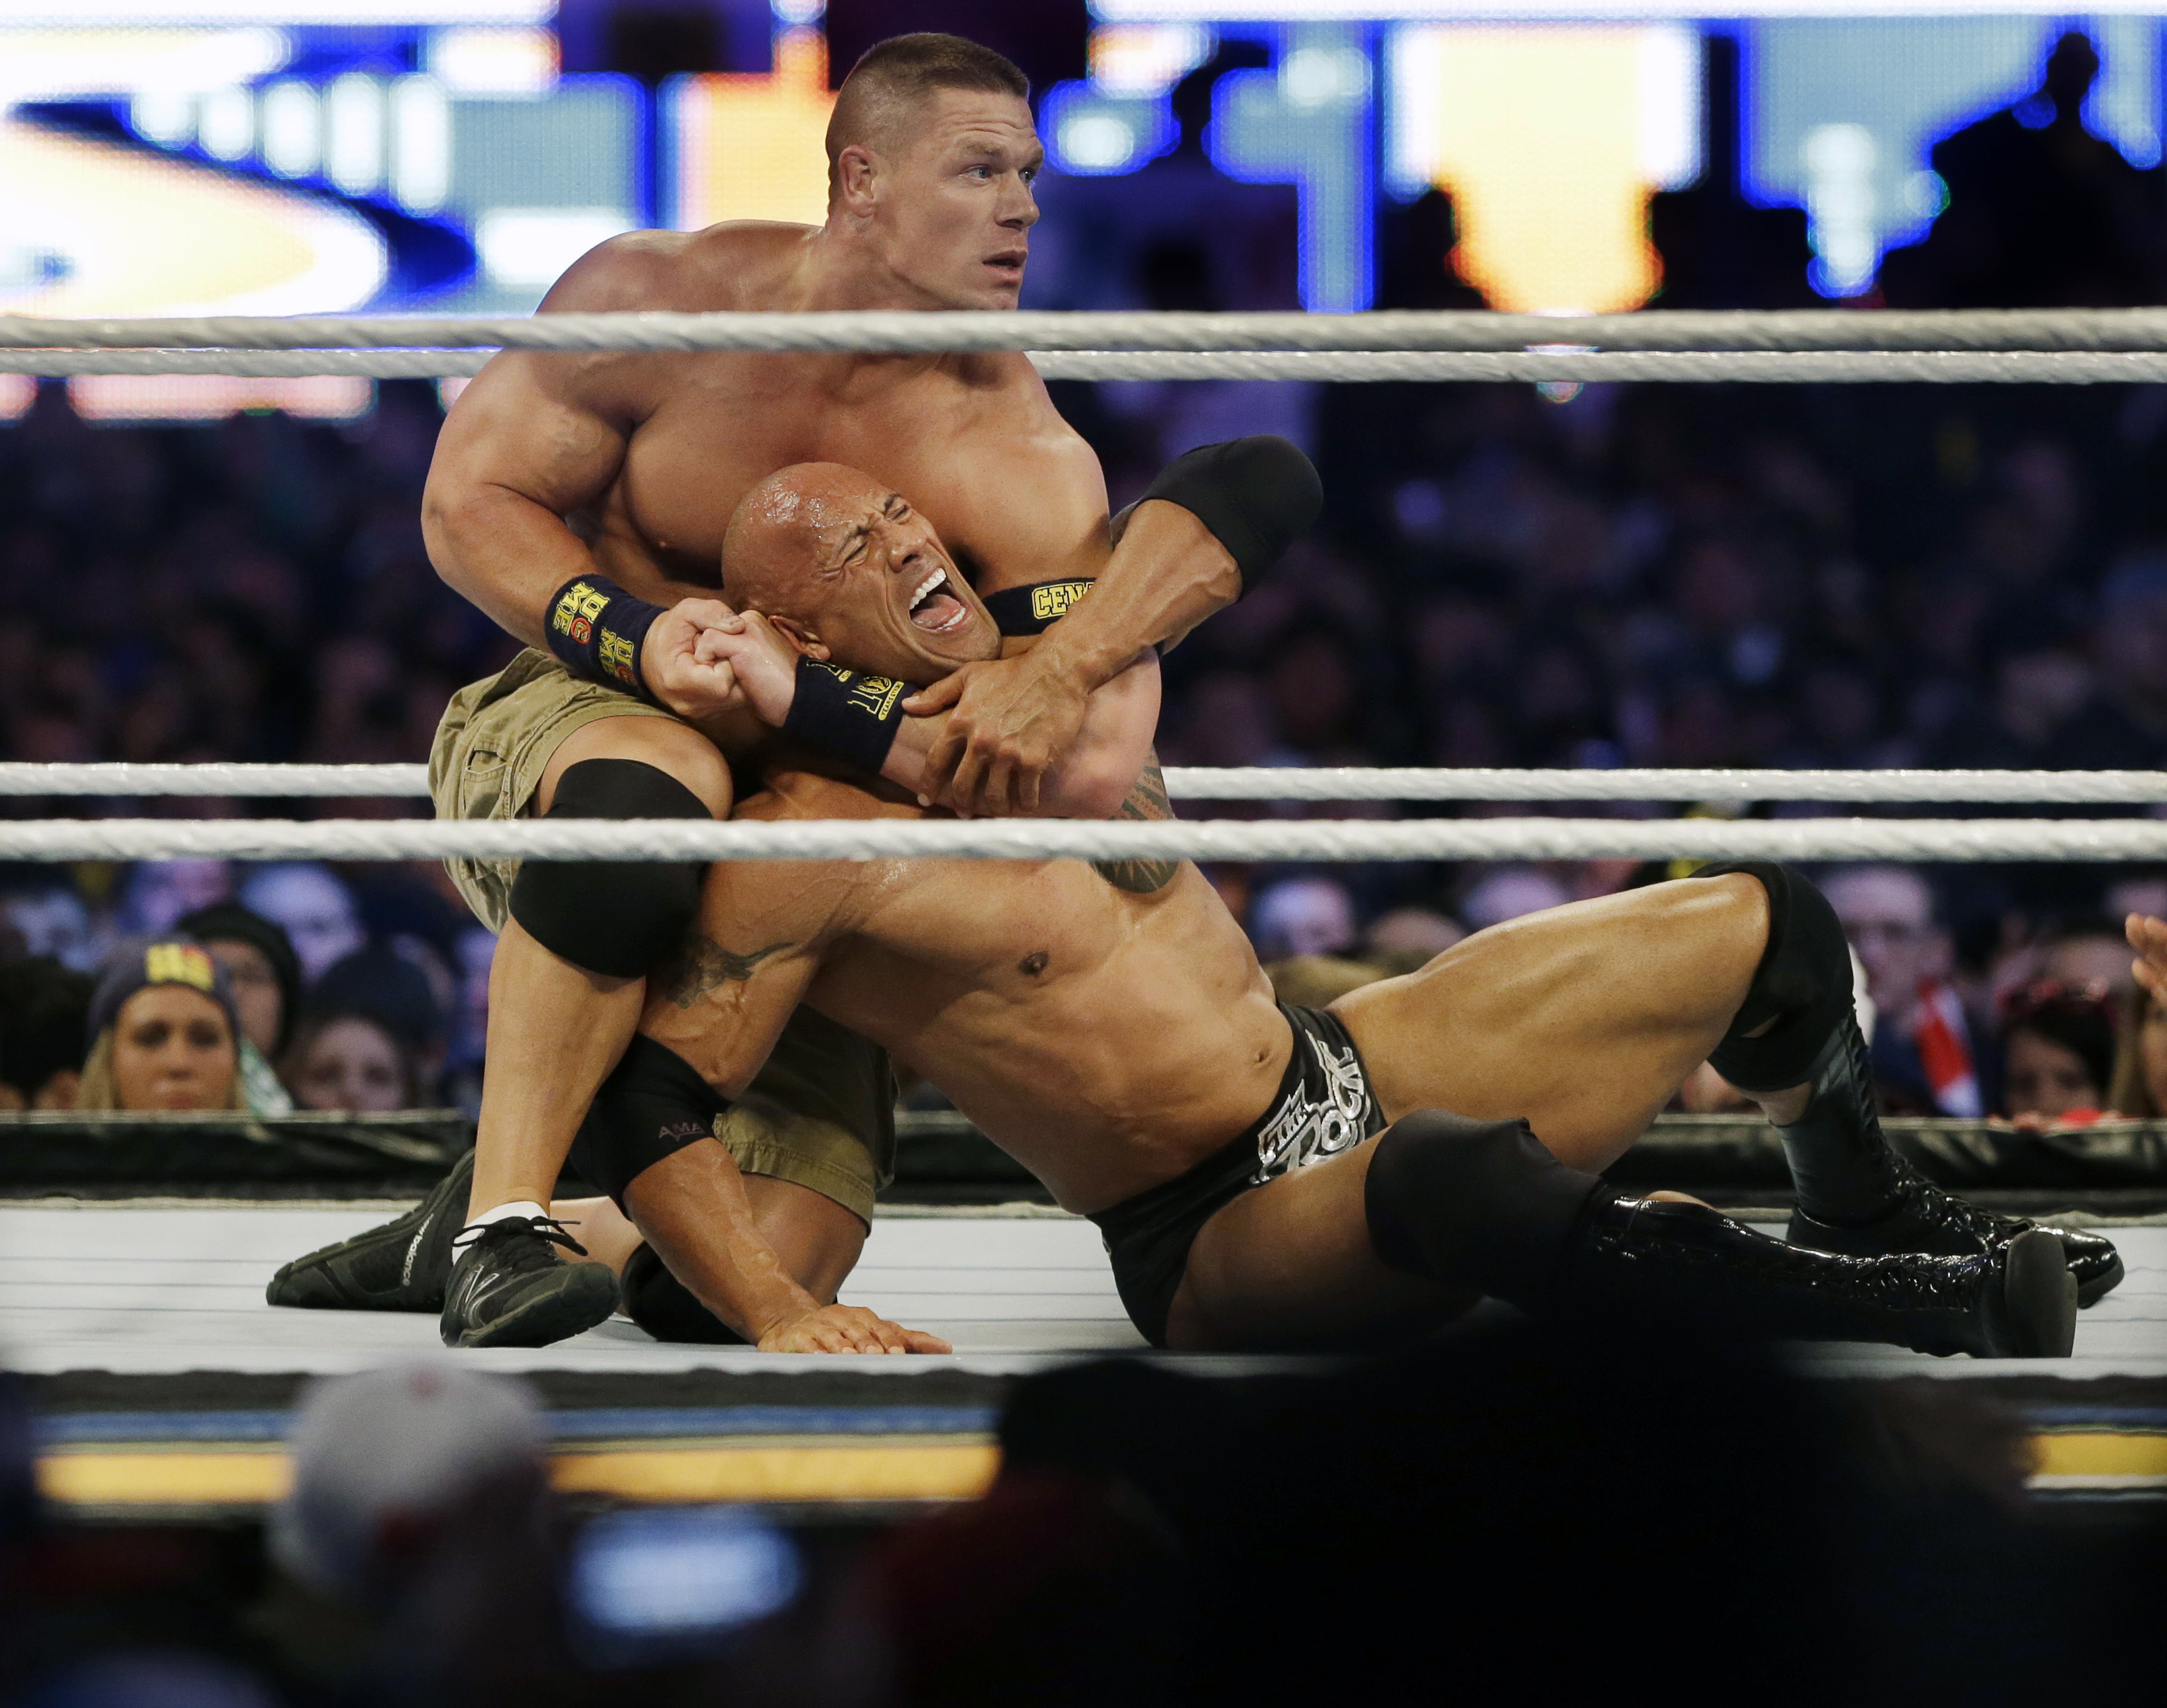 FILE -In a Sunday, April 7, 2013 file photo, wrestler John Cena, top, chokes Dwayne Douglas Johnson, known as The Rock as they wrestle during Wrestlemania, in East Rutherford, N.J. WWE bills WrestleMania as its Super Bowl, and is headed to a stadium worth